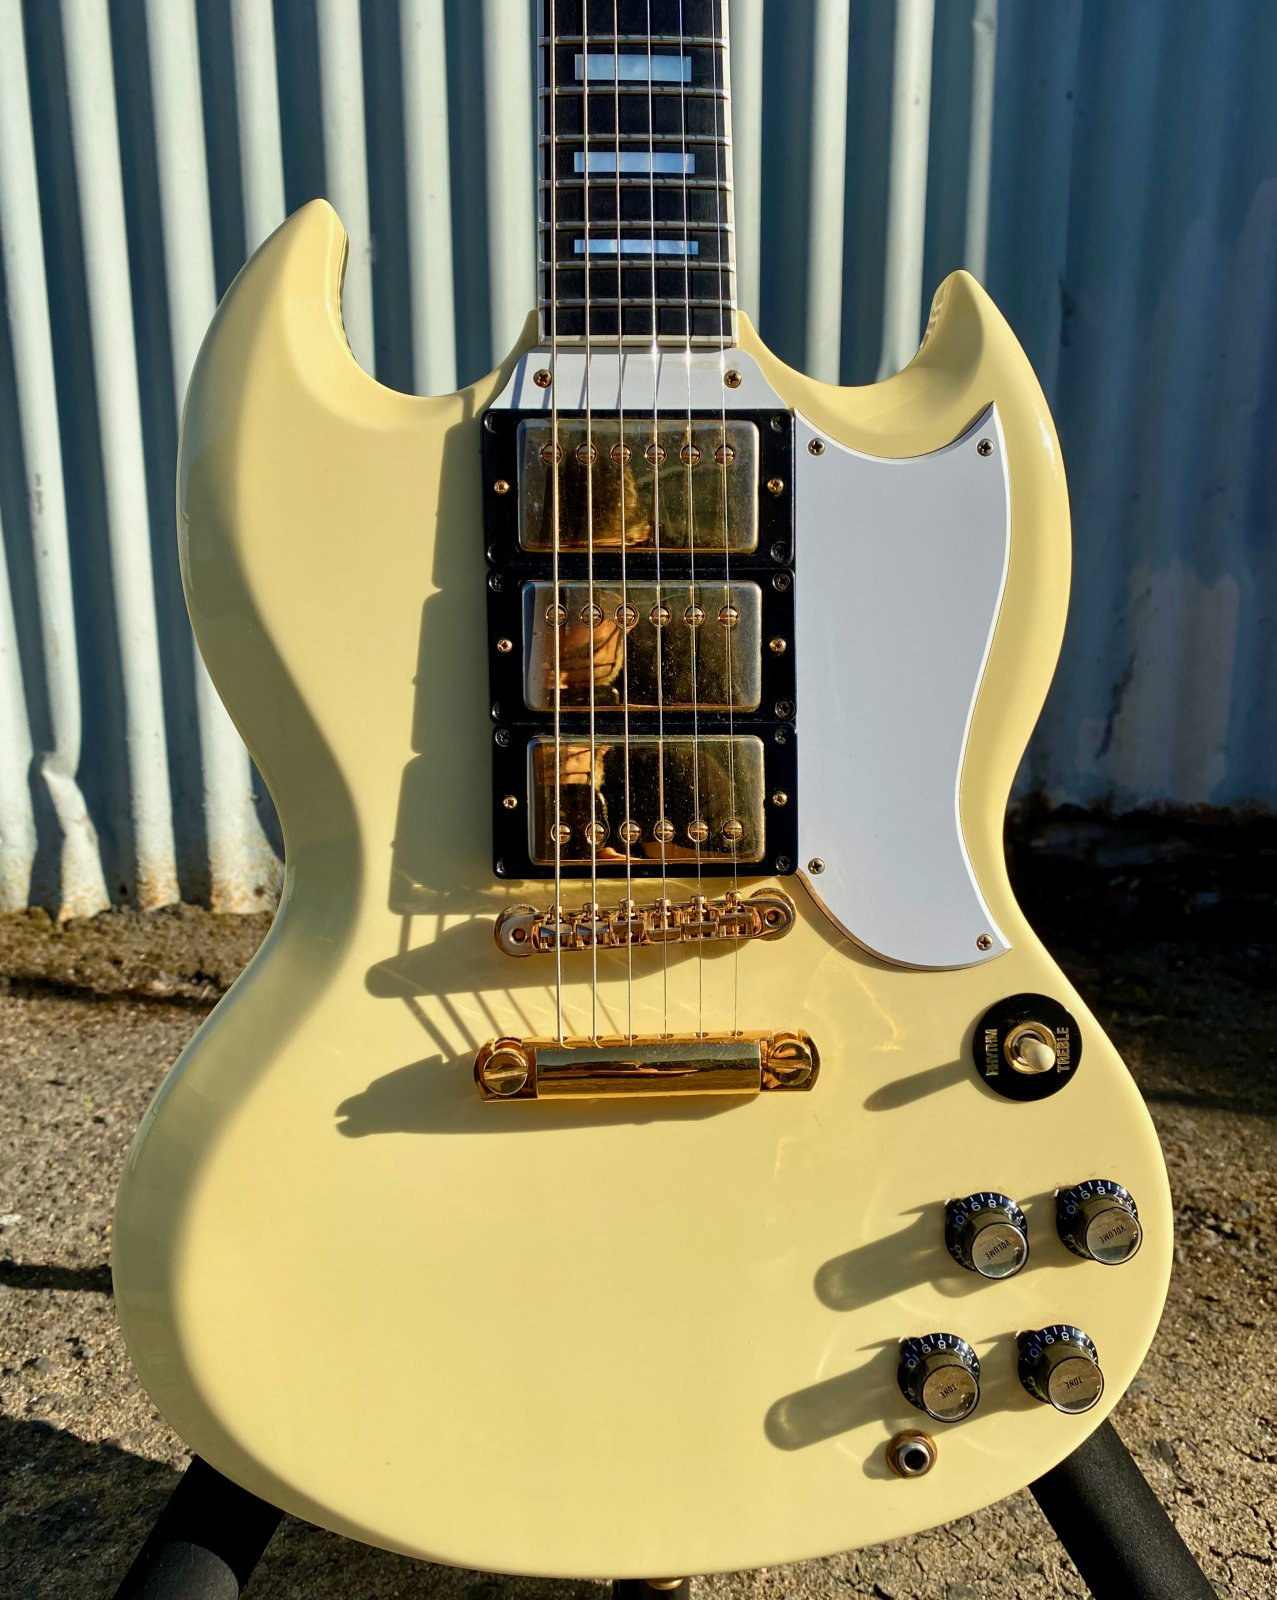 GIBSON SG LES PAUL CUSTOM ELECTRIC GUITAR, VINTAGE WHITE WITH MOLDED CASE, 1987